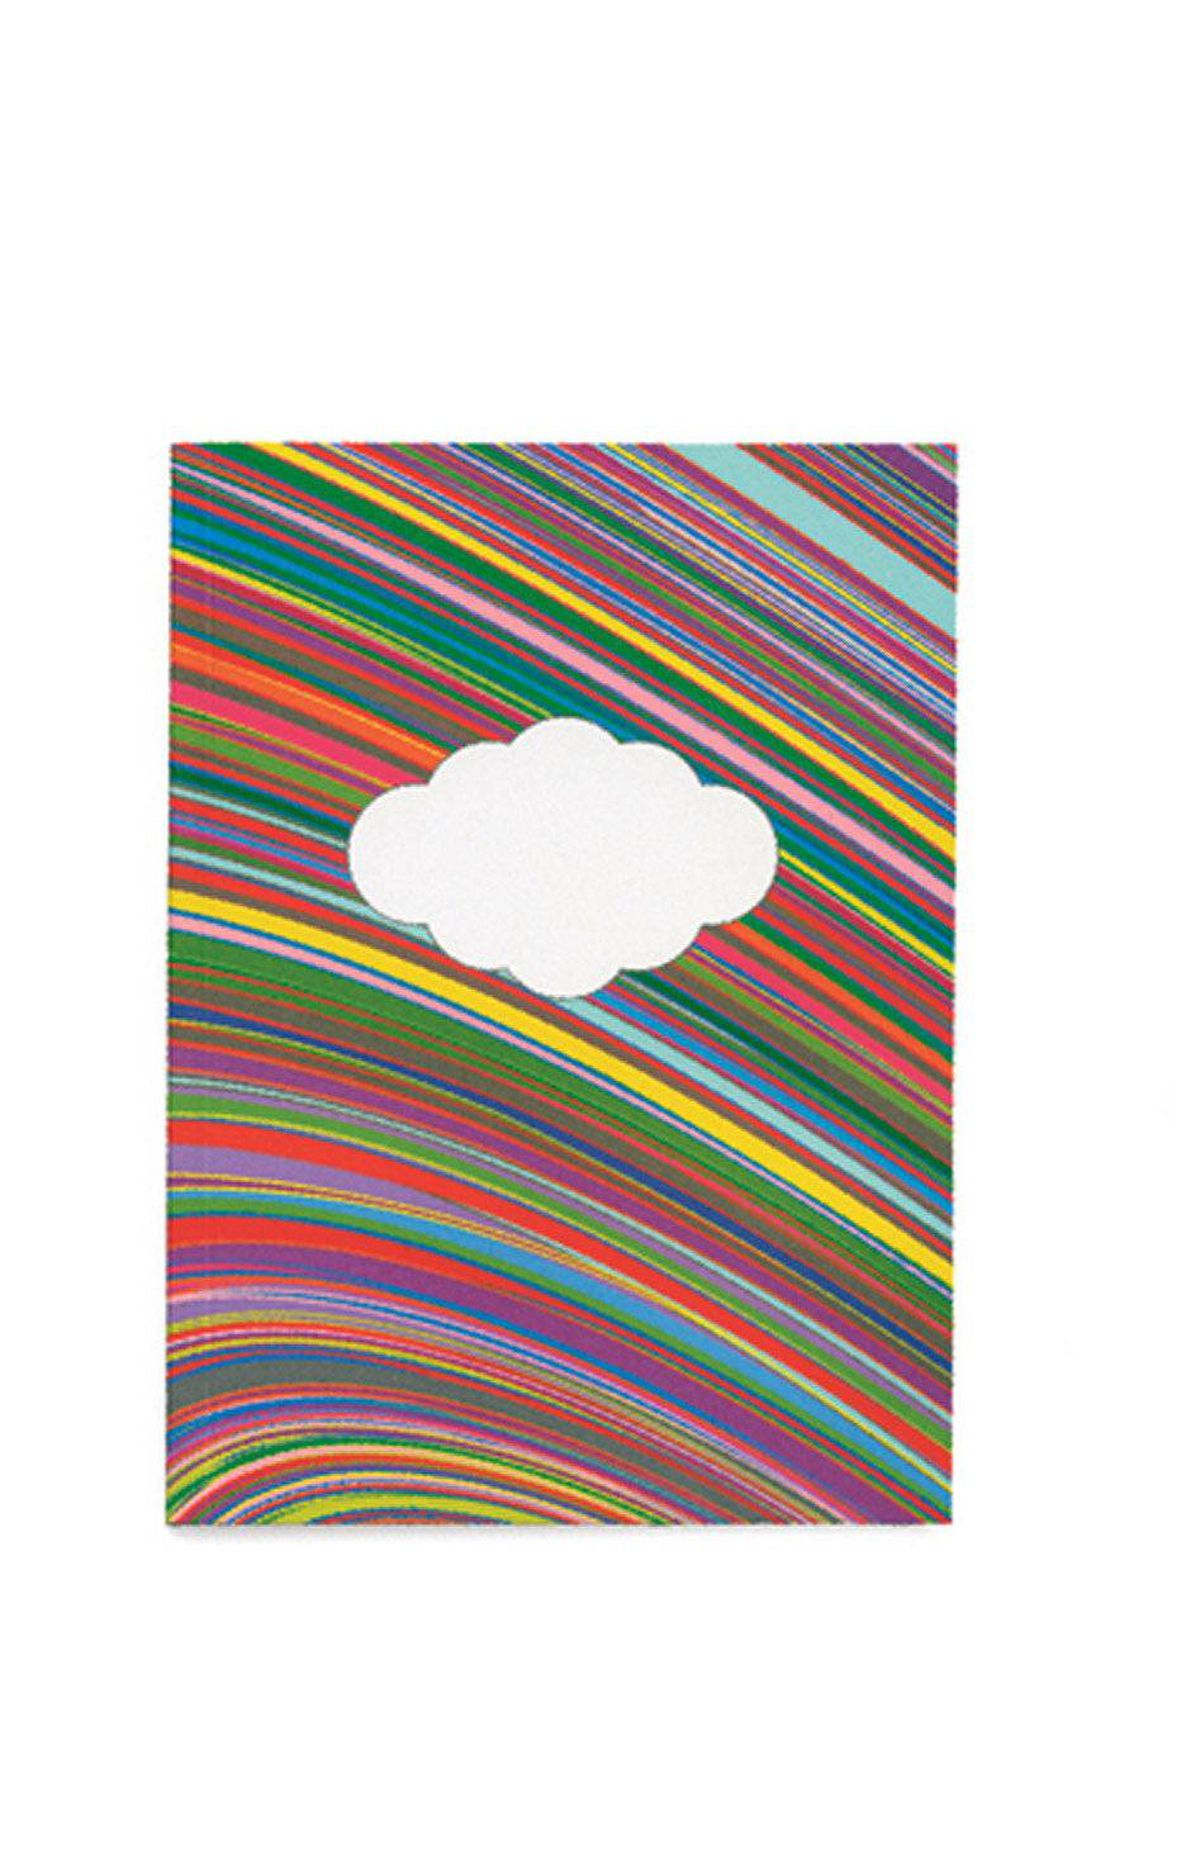 RAINBOW BRIGHT Made in Canada by Jonesy, this cheery notebook sporting a soy-ink rainbow cover design measures only five by seven inches, but holds 100 recycled-paper pages. A biodegradable sleeve keeps it stylishly contained. And there are no raffia ties in sight. $7 through www.jonesy.ca.